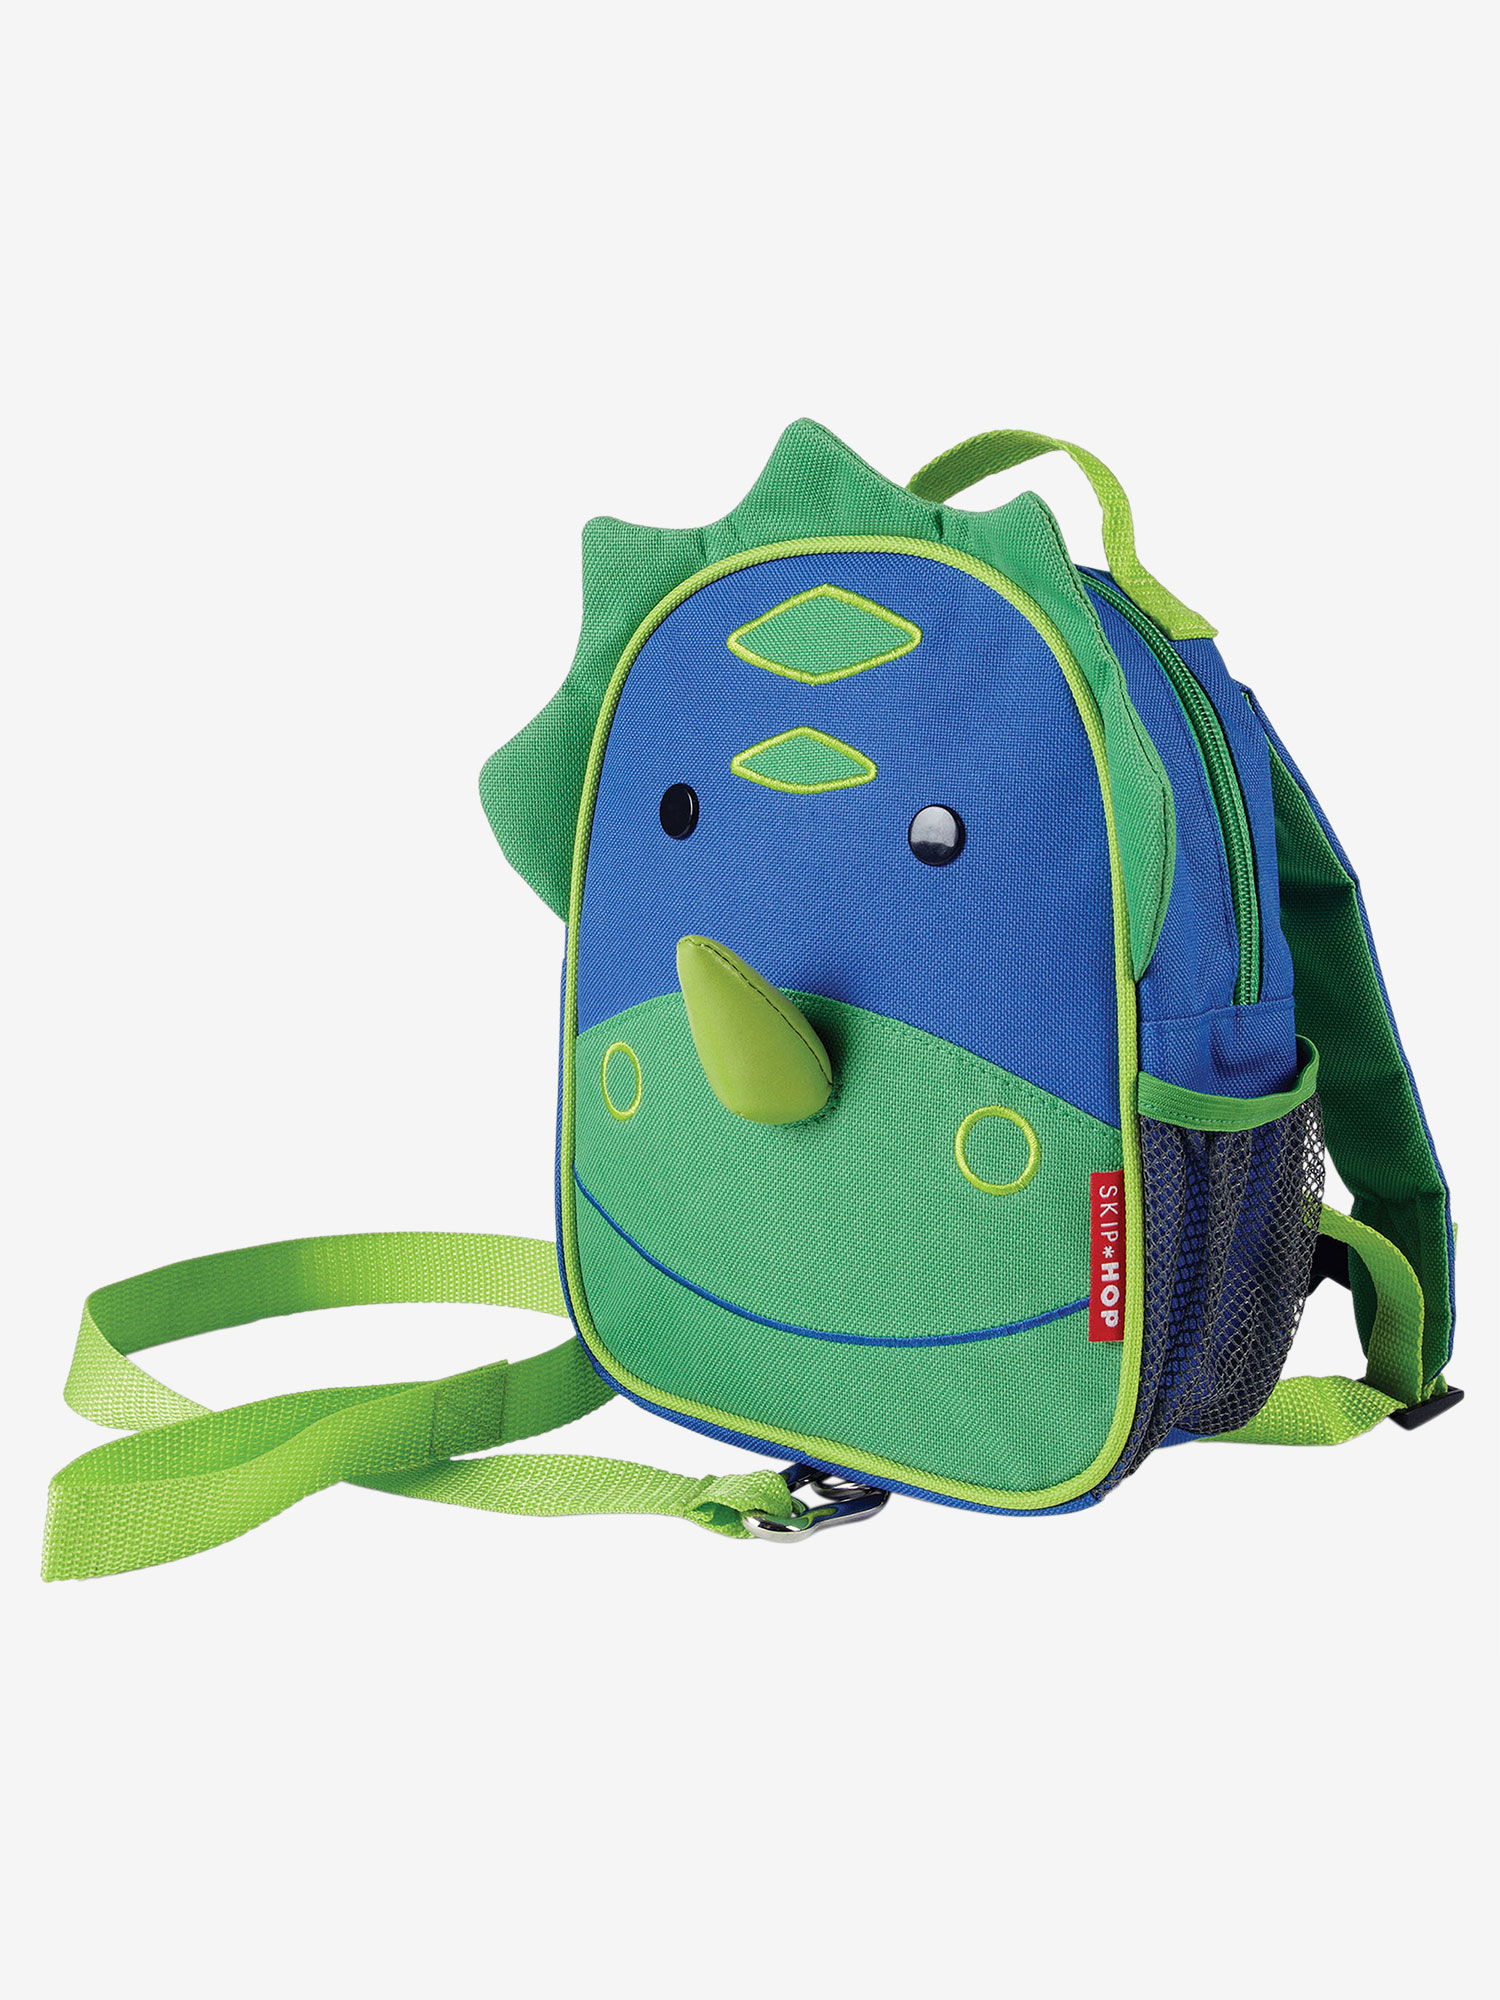 Skip Hop Zoo Mini Backpack with Rein Dinosaur